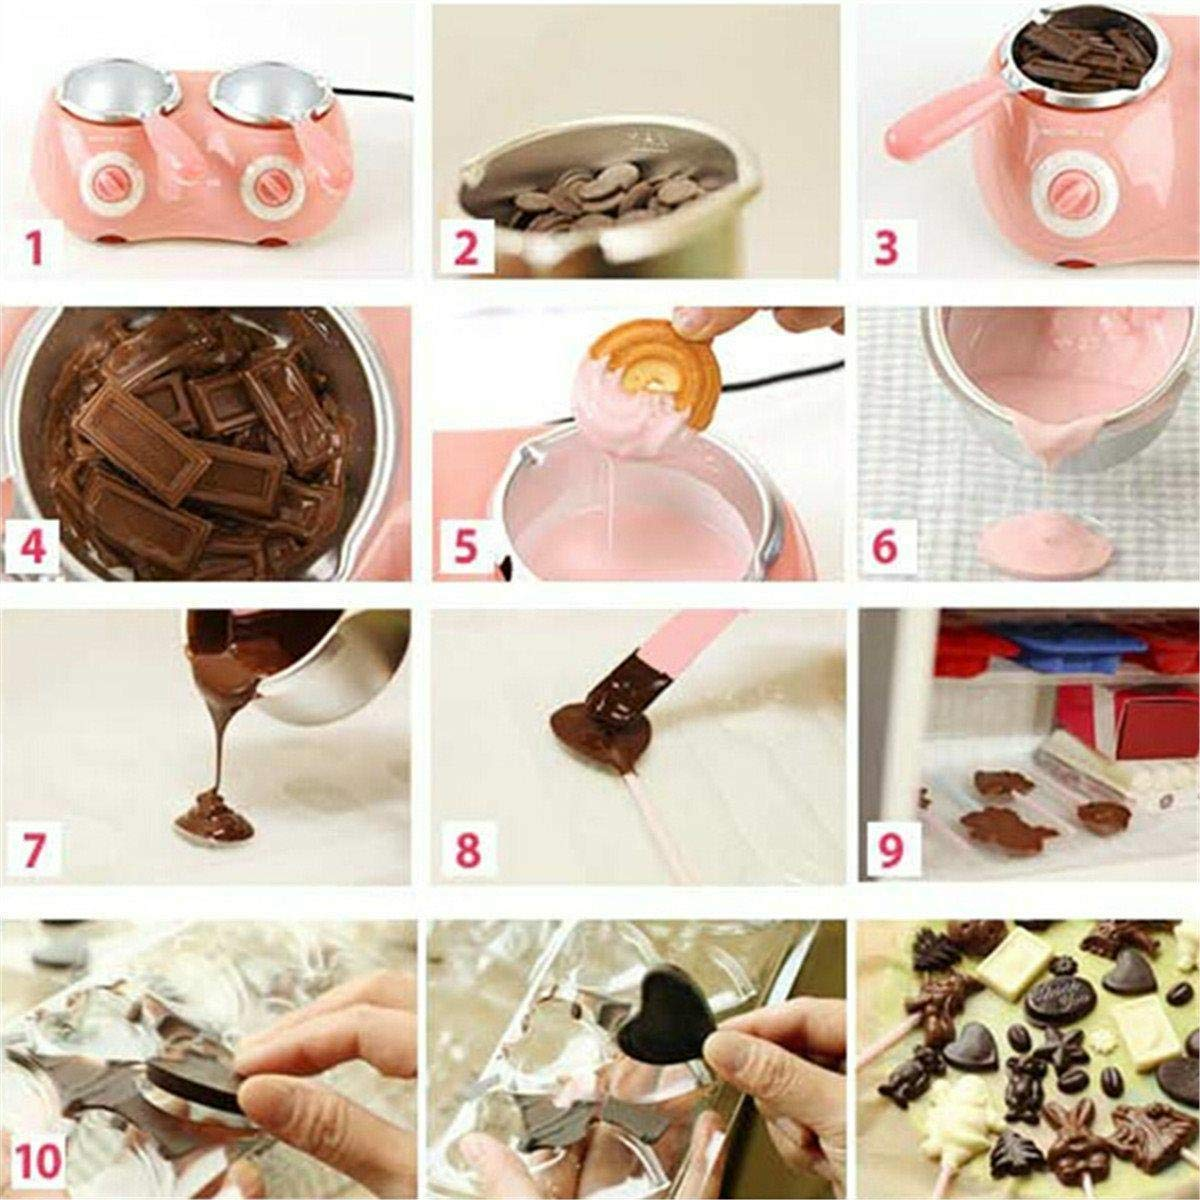 Candy Melting Pot, GIGRIN Electric Chocolate Melting Pot 250ml Chocolate Fondue with 24 Free Accessories, for Chocolate, Candy, Butter, Cheese, Caramel (Pink & Double Pot) by GIGRIN (Image #4)